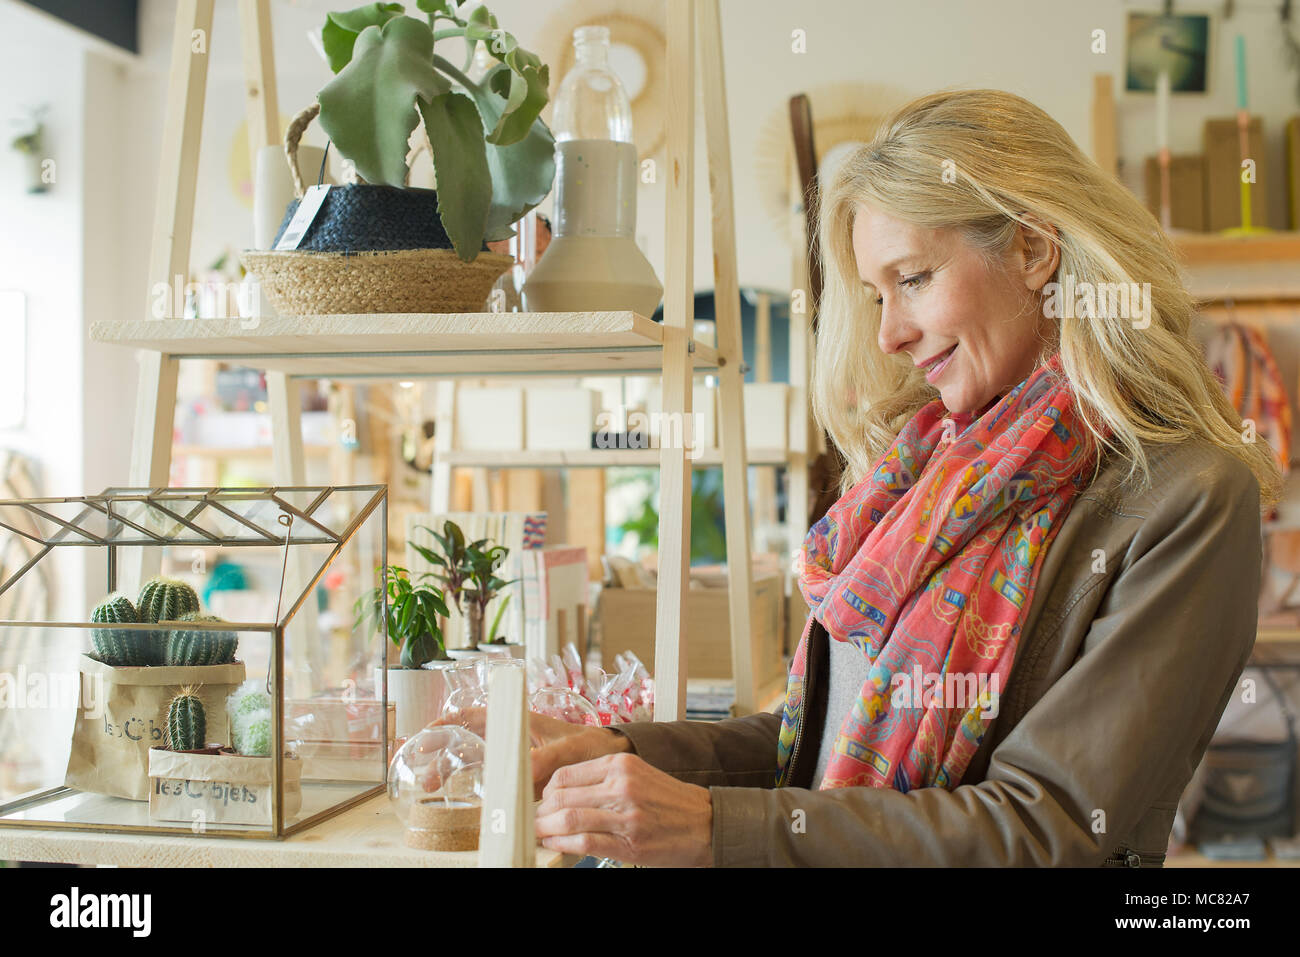 Mature Woman Shopping In Home Decorating Store